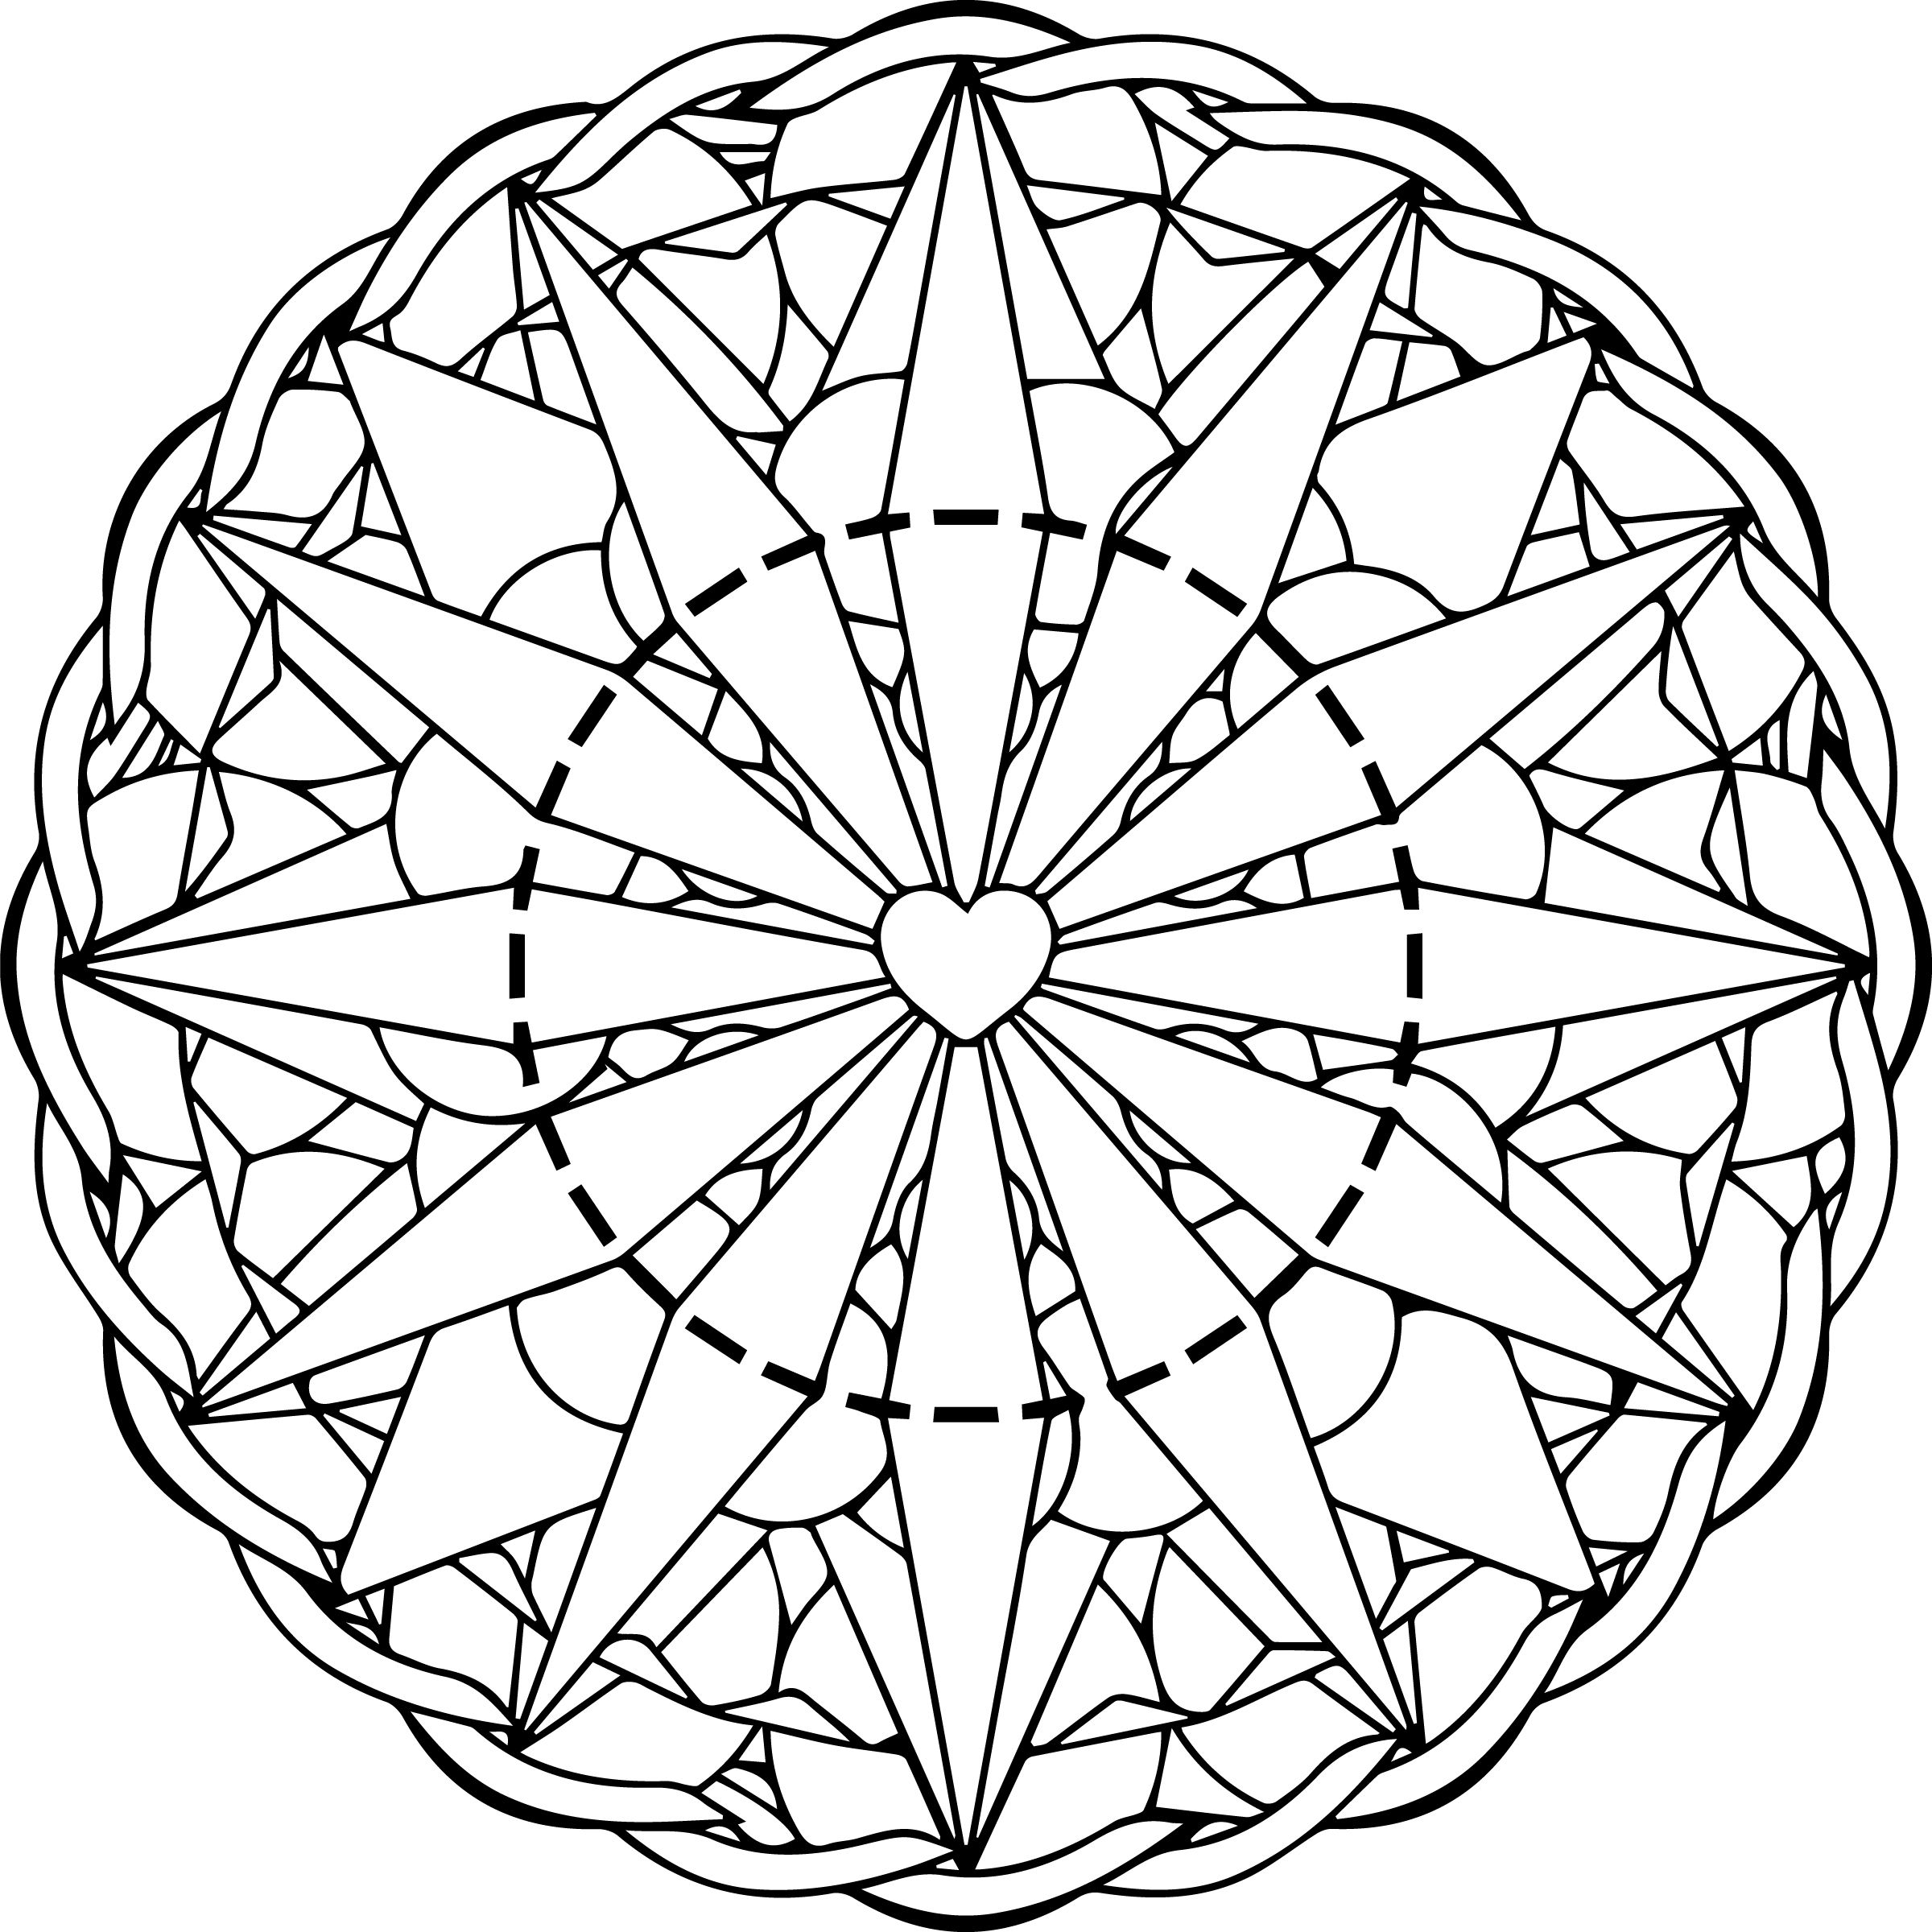 Adult coloring pages free printables mandala - Free Printable Mandala Coloring Page For Adults